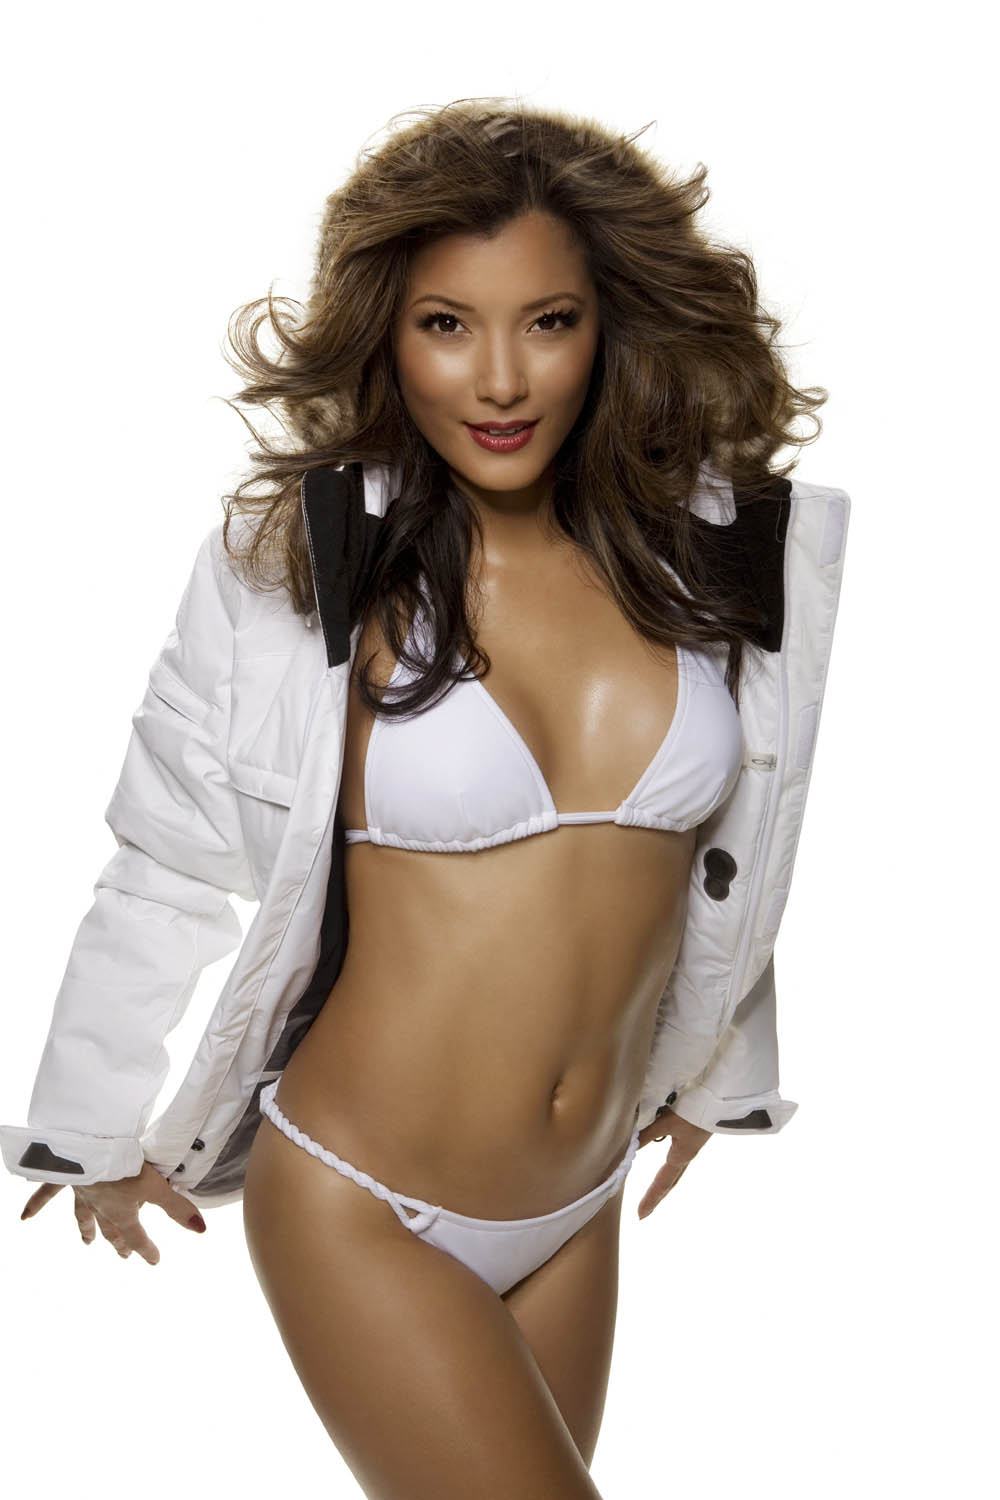 Kelly hu photo gallery 85 best kelly hu pics celebs place kelly hu photo gallery voltagebd Images